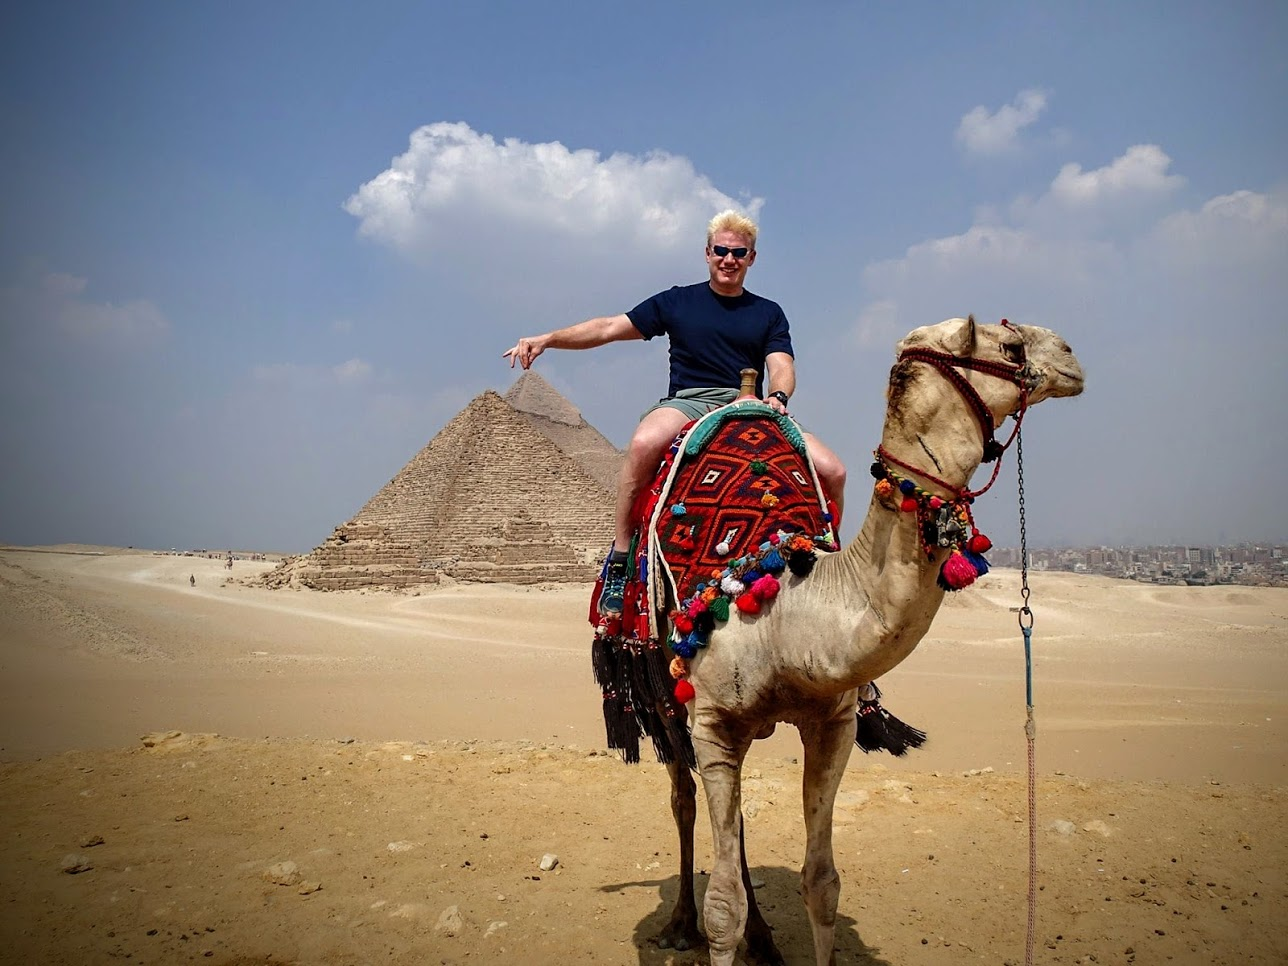 Christian riding a camel and geeking out at the Great Pyramid of Giza in Egypt